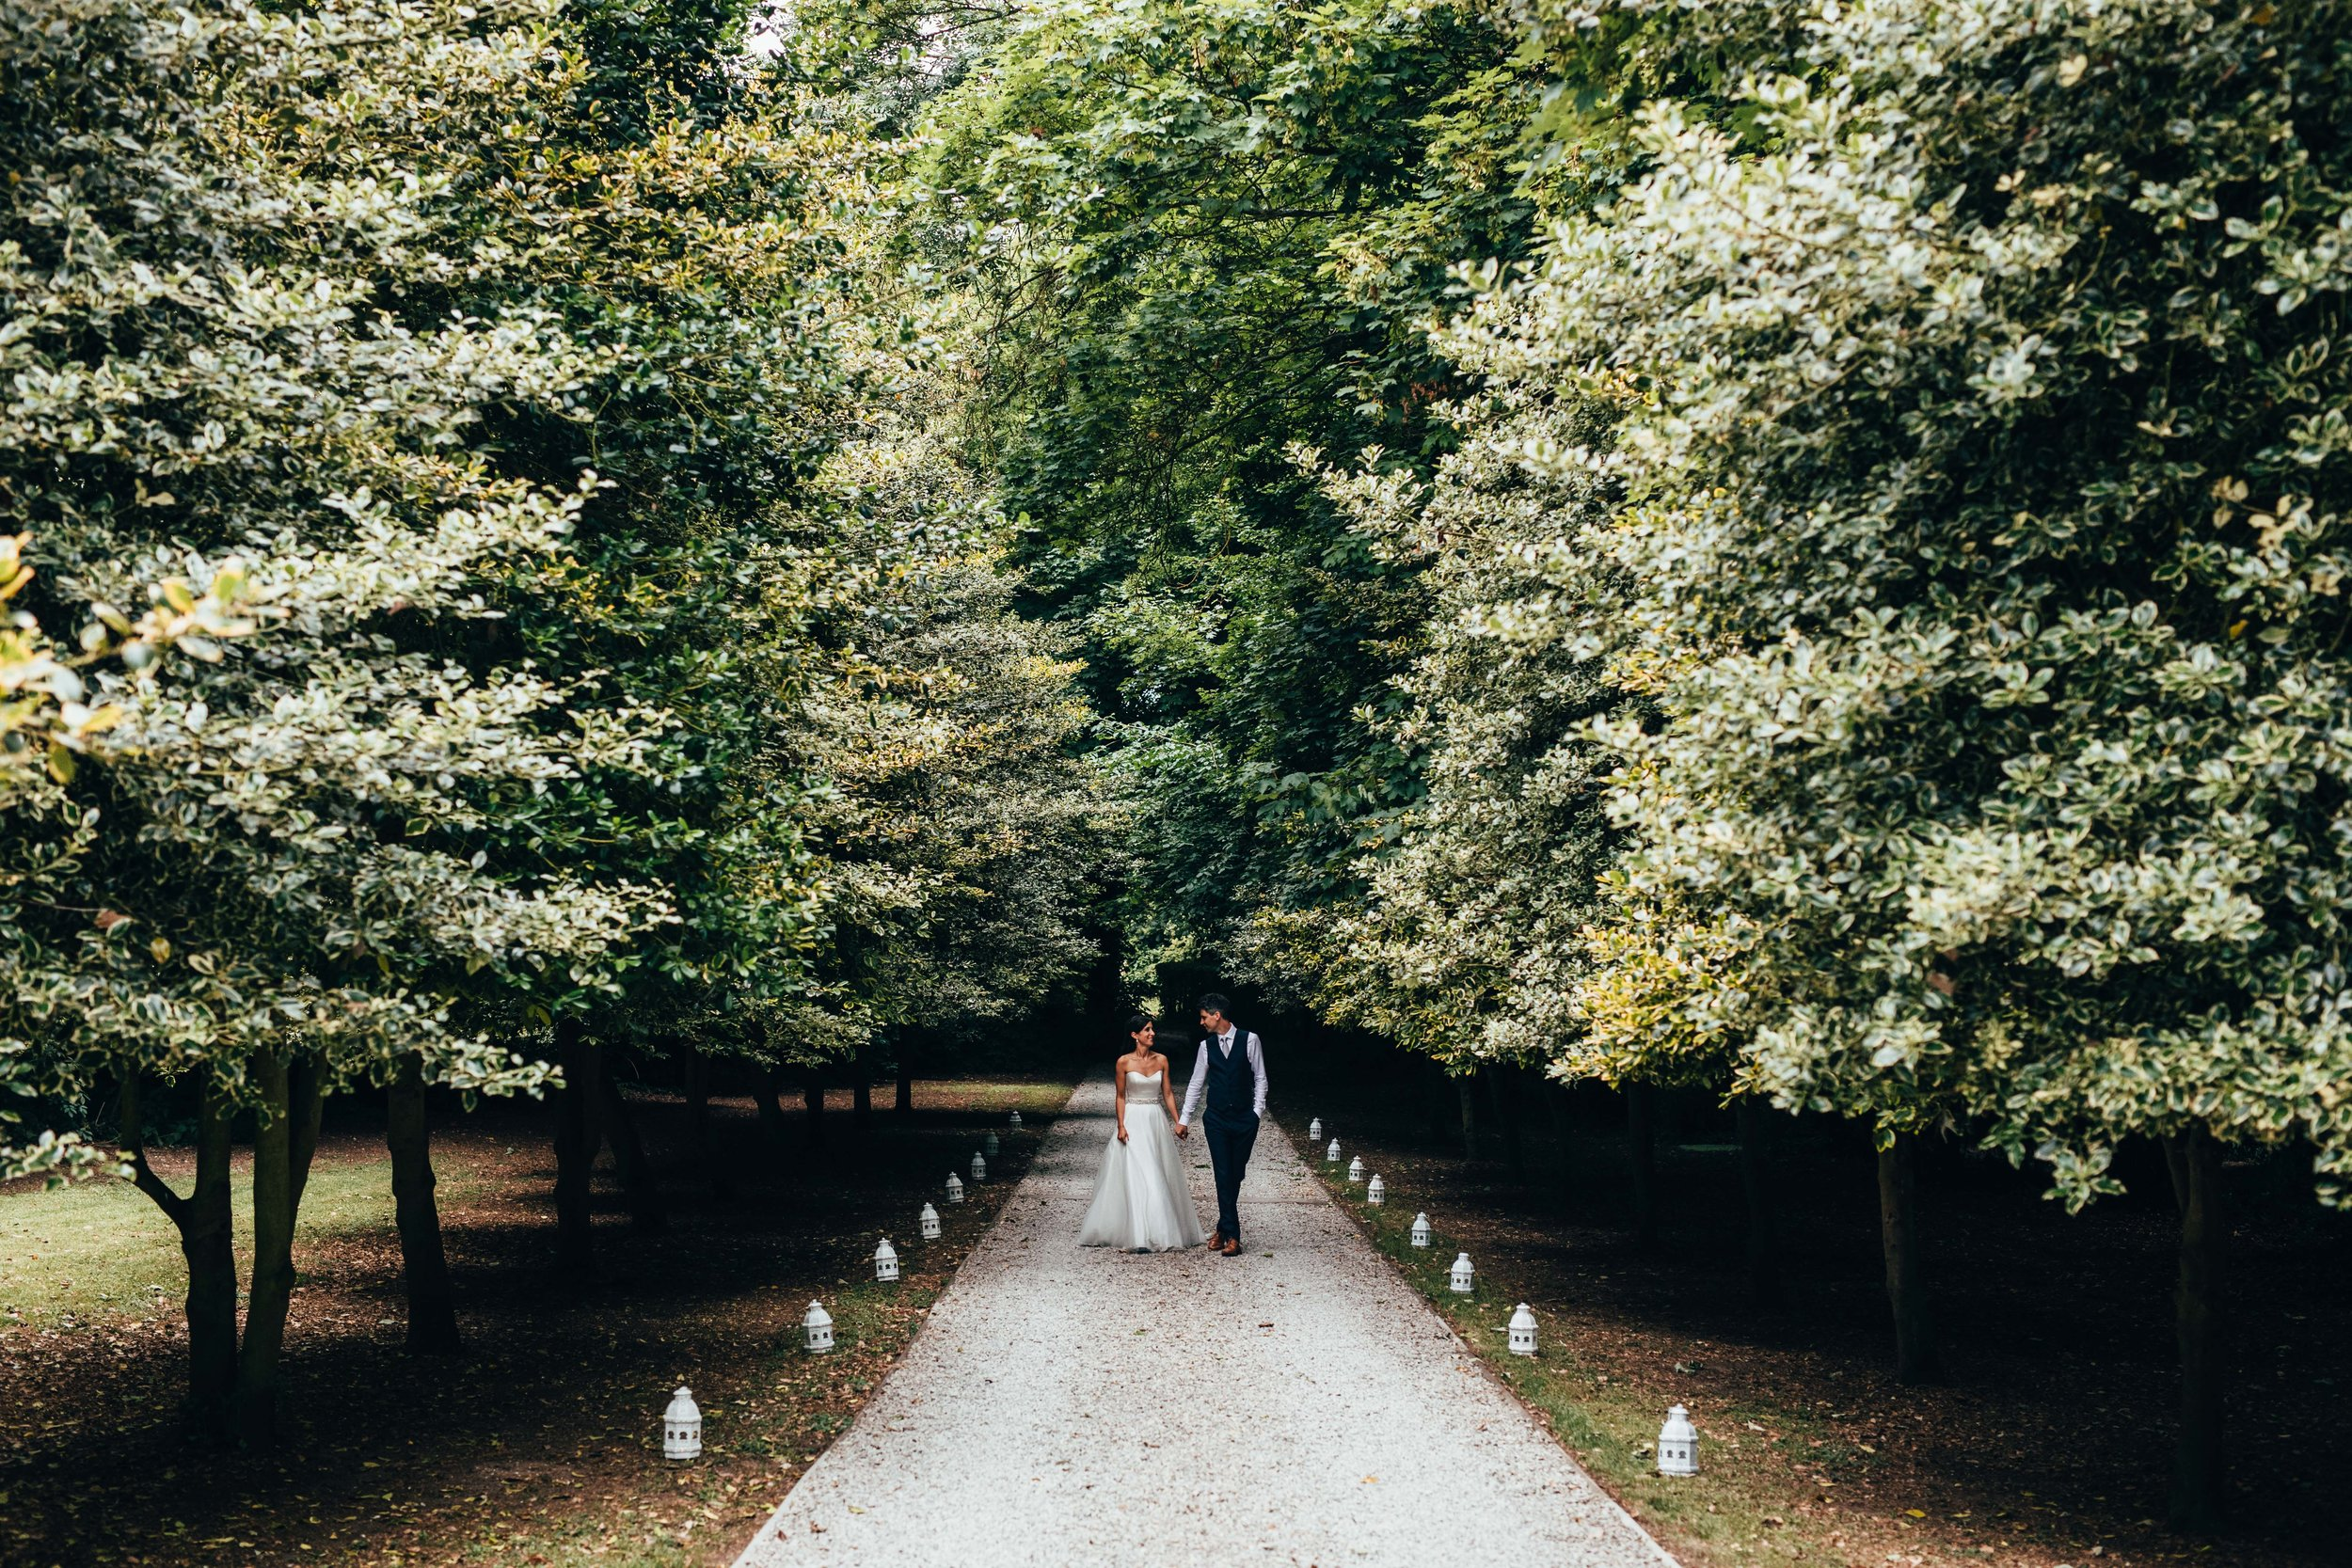 woodland forest in Kent wedding 2020 documentary photography